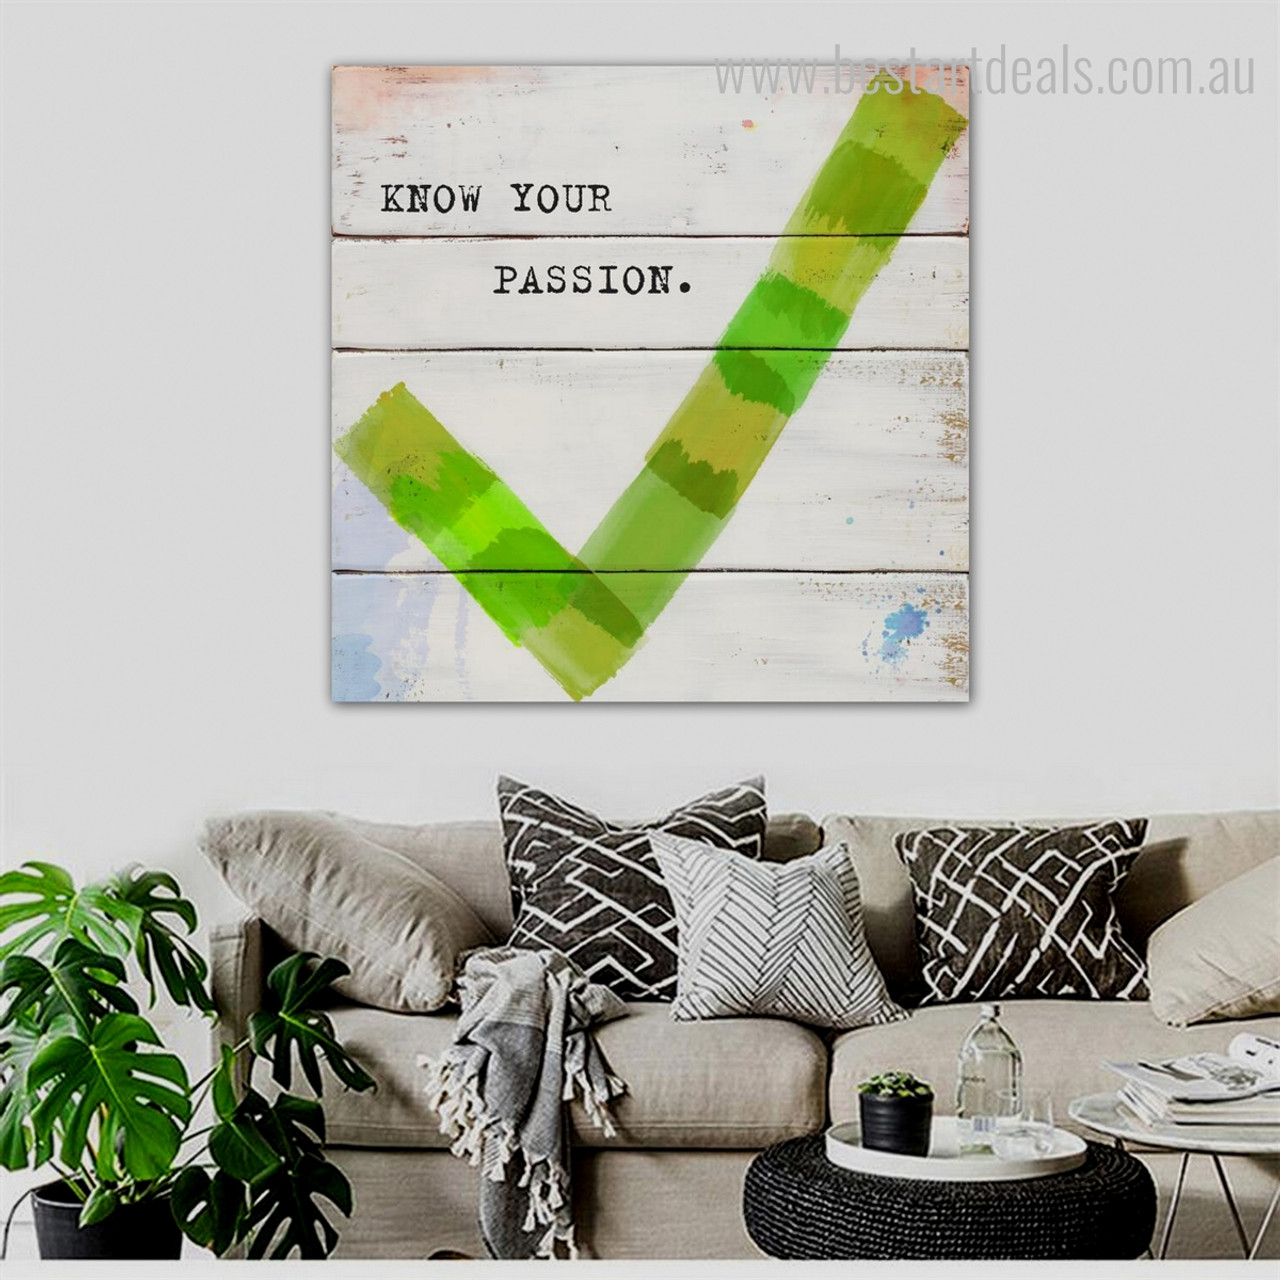 Buy Your Passion Canvas Print Wall Art Decor